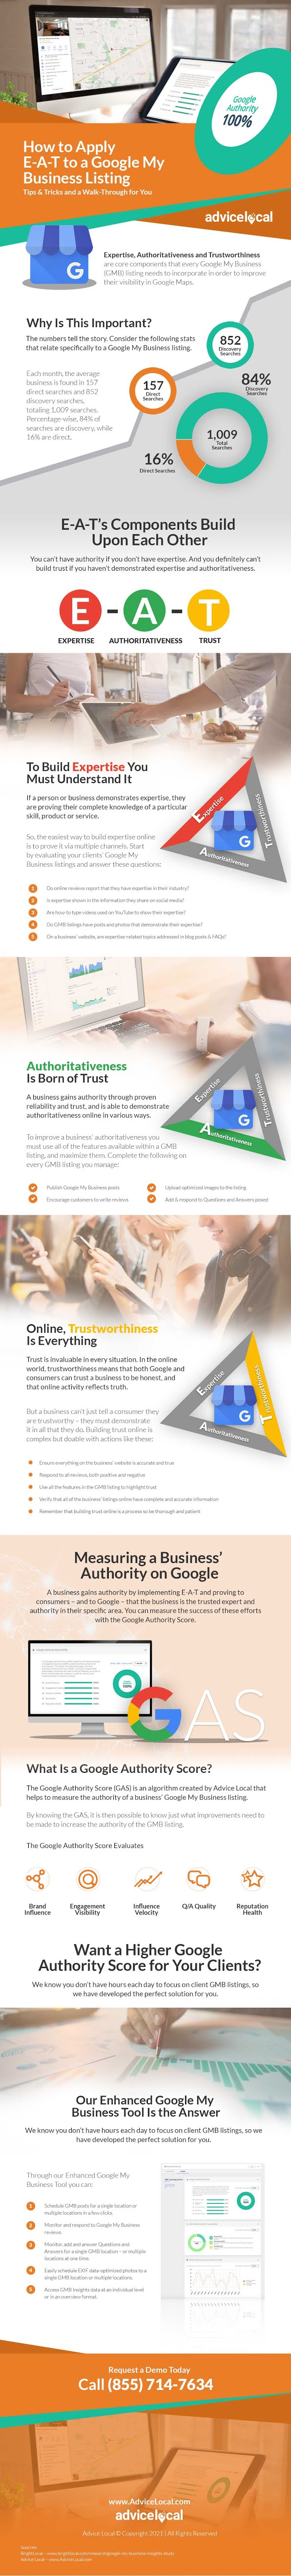 how-to-apply-google-eat-to-a-google-my-business-listing-infographic